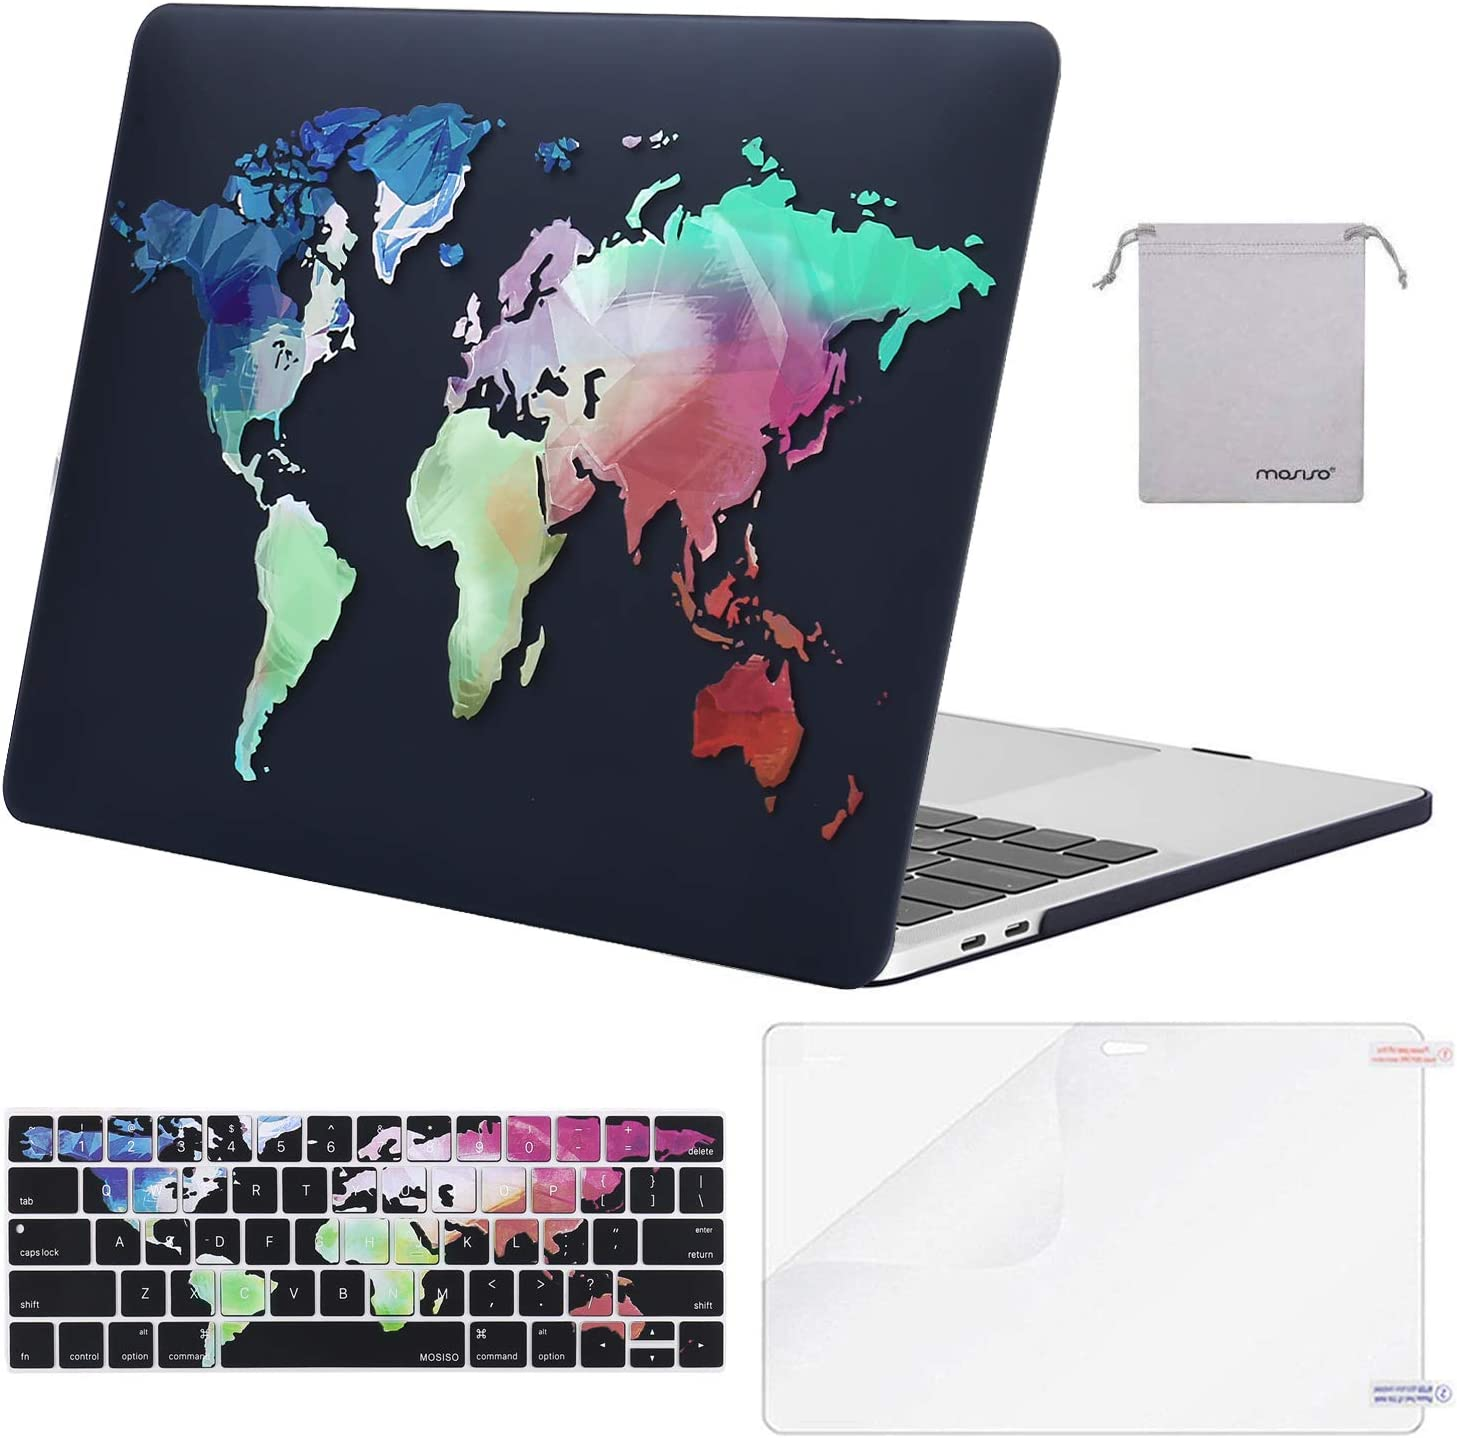 MOSISO Compatible with MacBook Pro 13 inch Case 2019 2018 2017 2016 Release A2159 A1989 A1706 A1708, Plastic Pattern Hard Shell Case&Keyboard Cover Skin&Screen Protector&Storage Bag, Black World Map